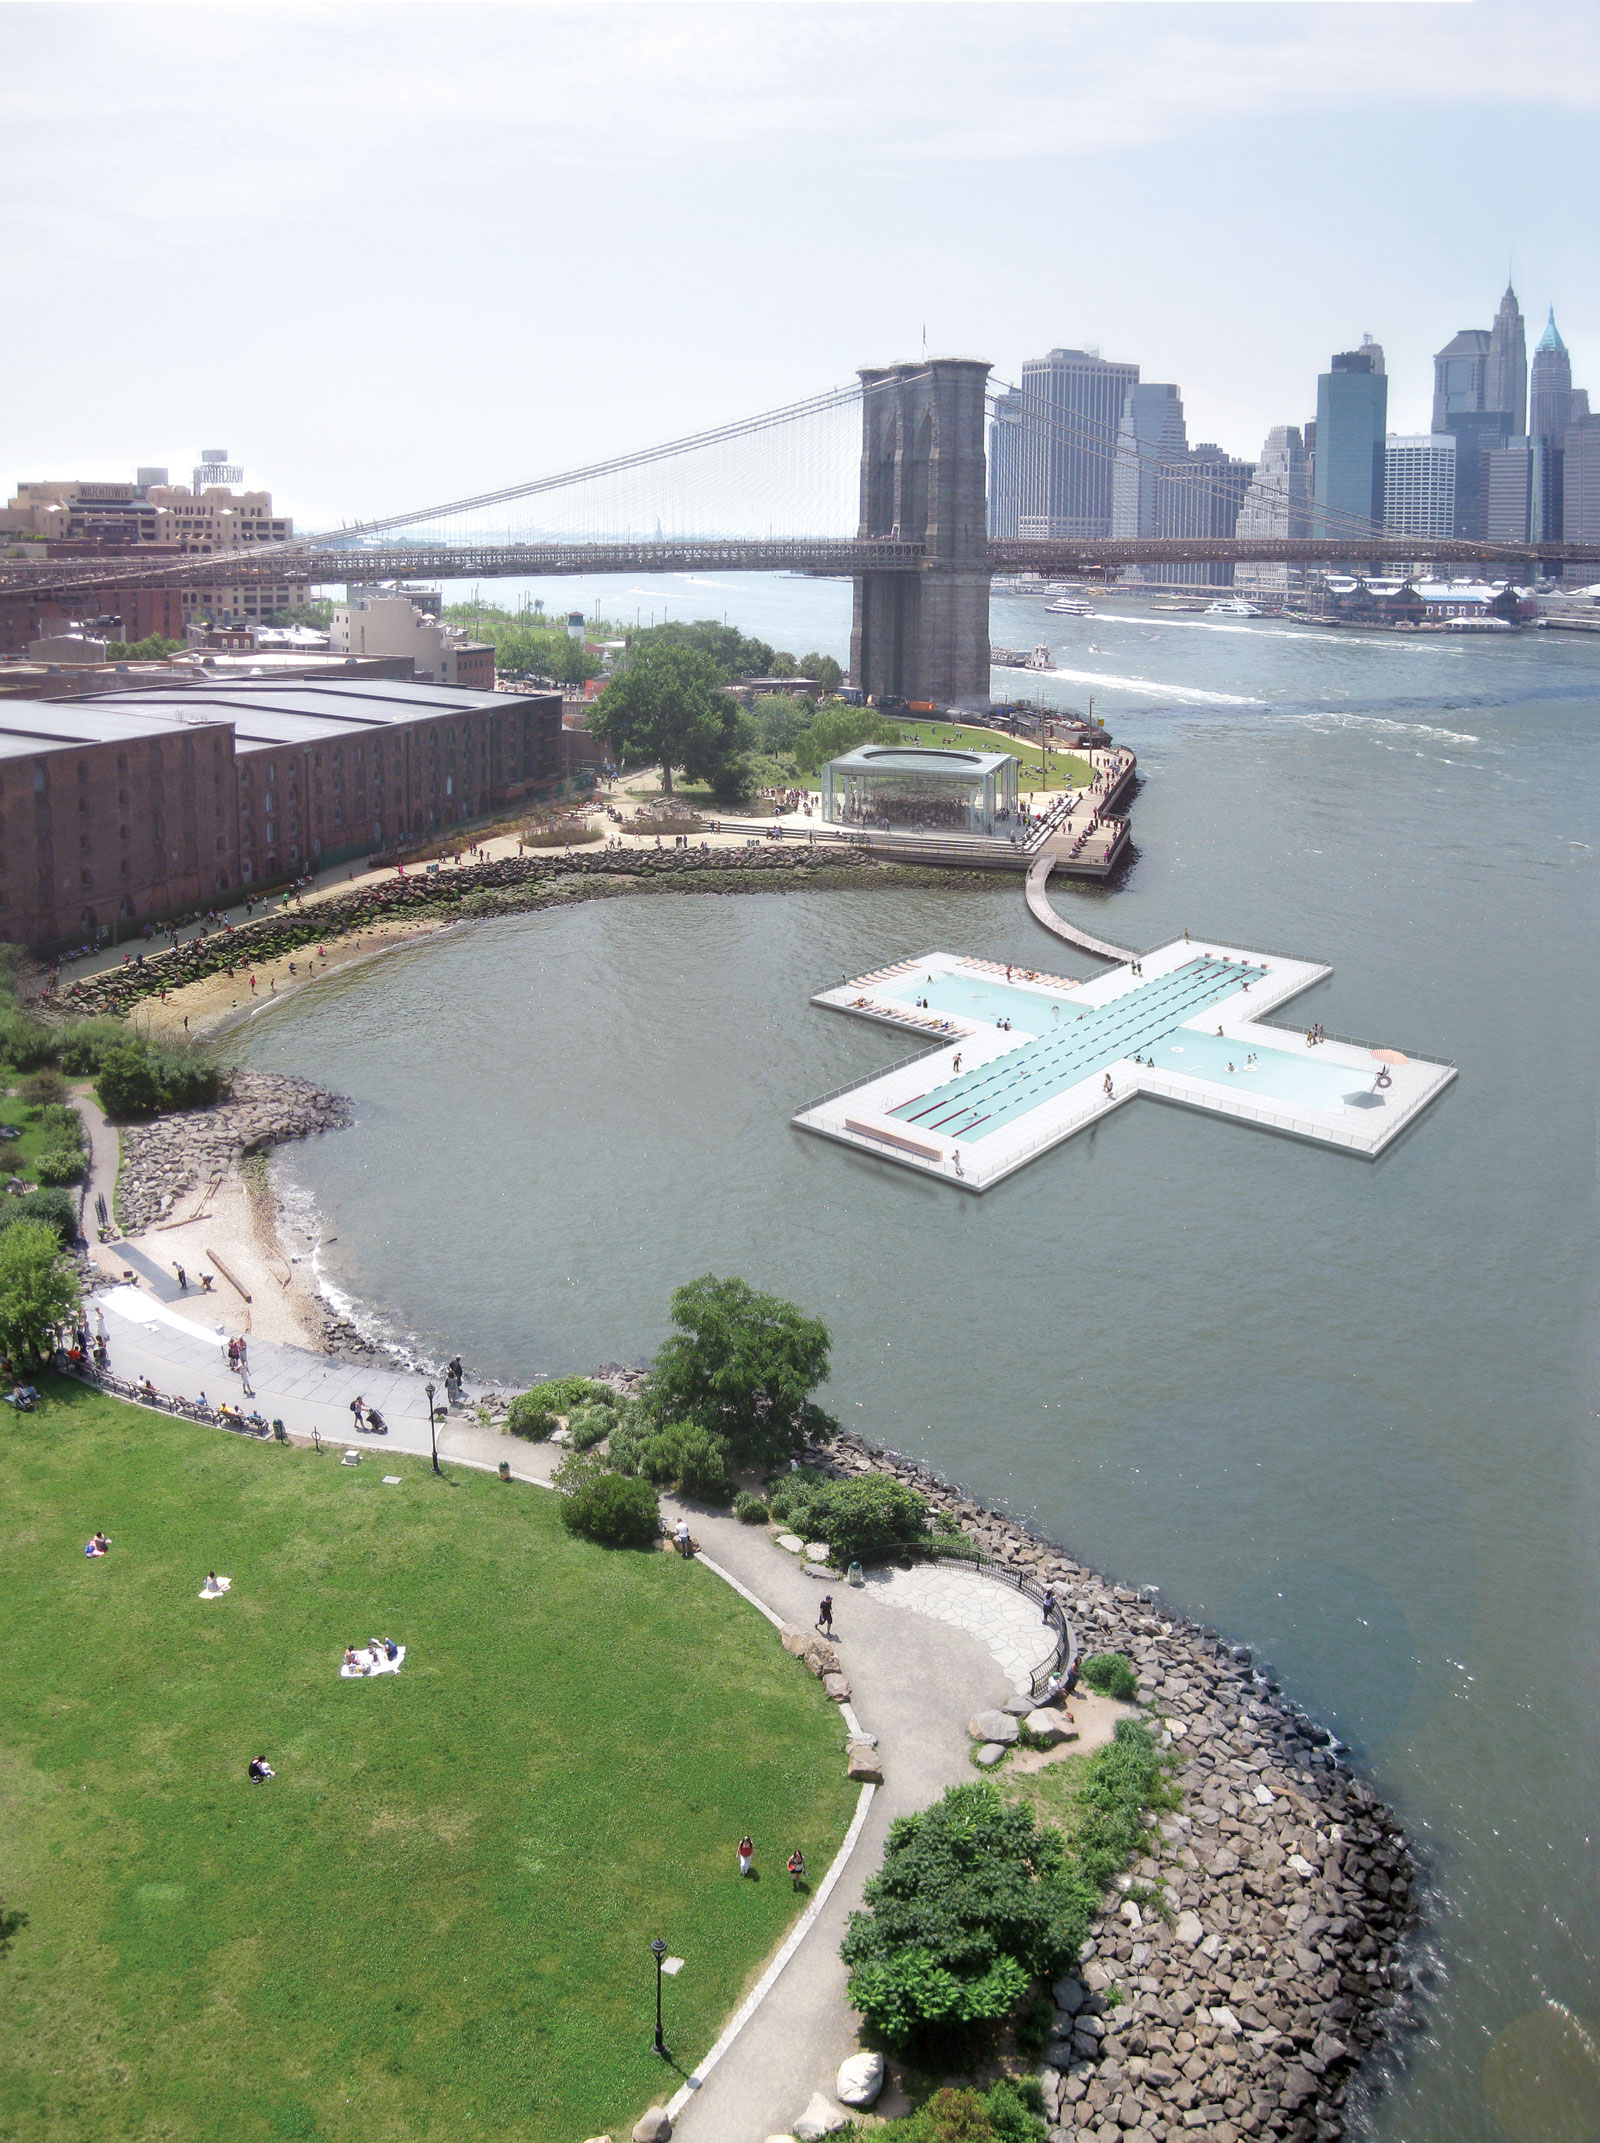 The Plus Pool in NYC